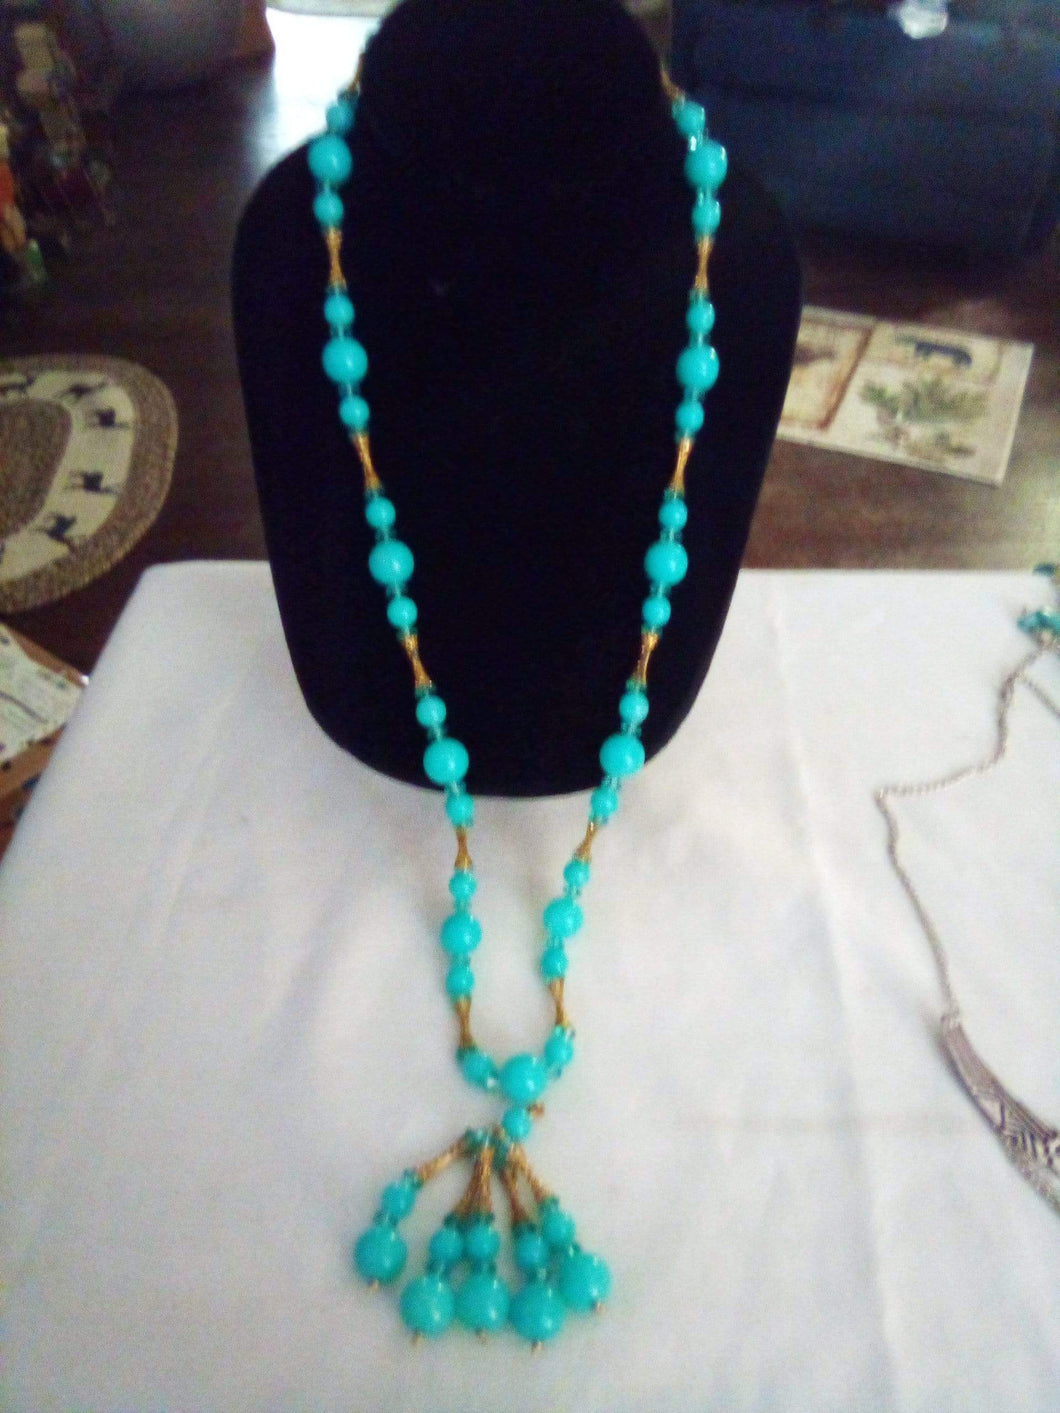 Light blue beaded necklace - B&P'sringsnthings